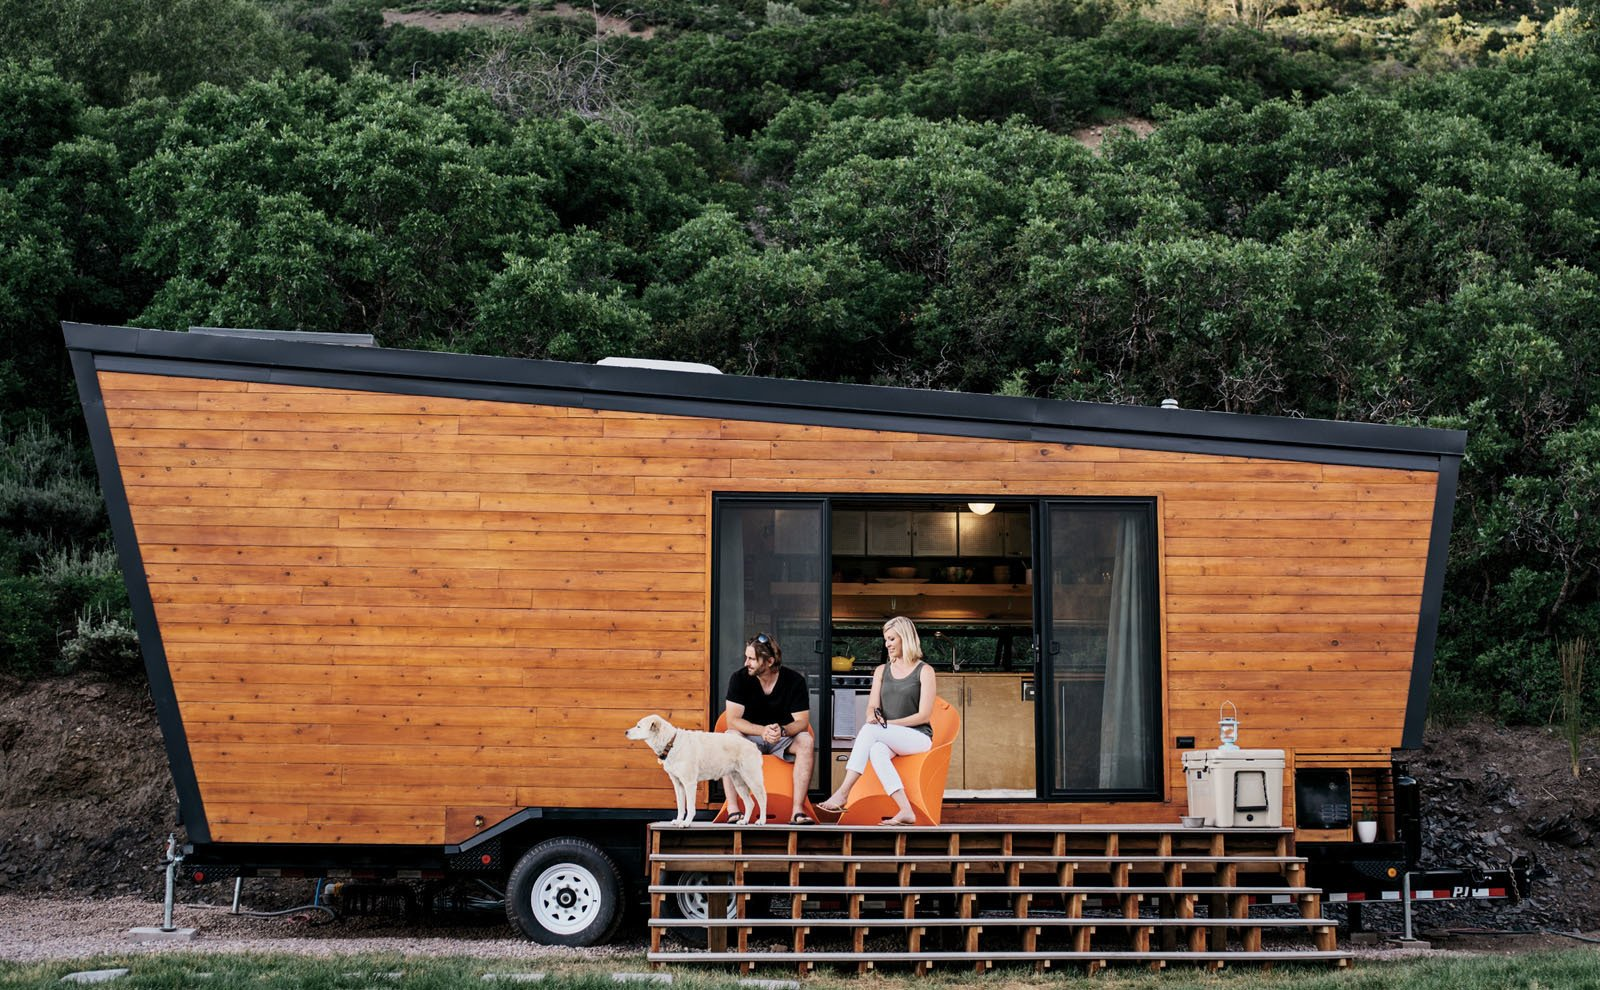 How to build a tiny diy trailer on budget dwell